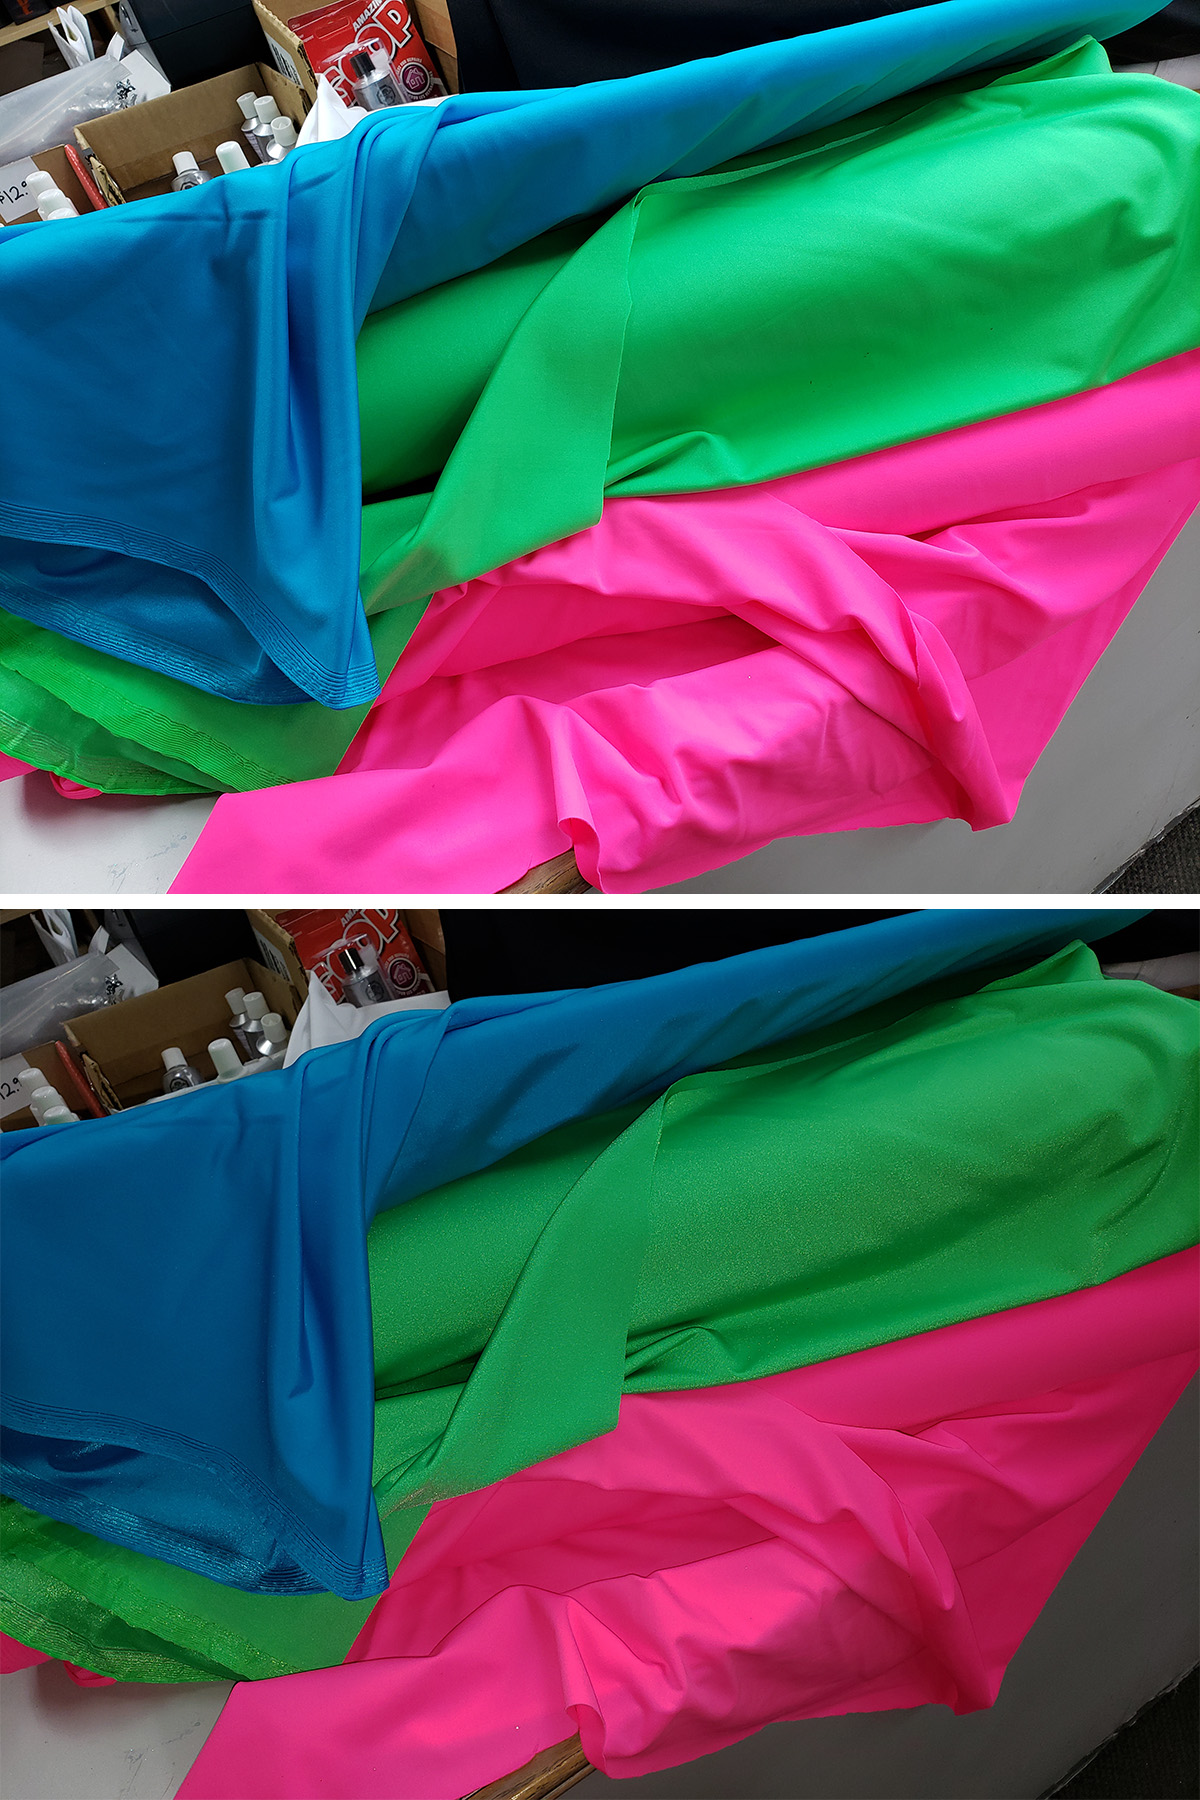 A two part comparison image showing a stack of bright blue, green, and hot pink fabrics, with and without the flash.